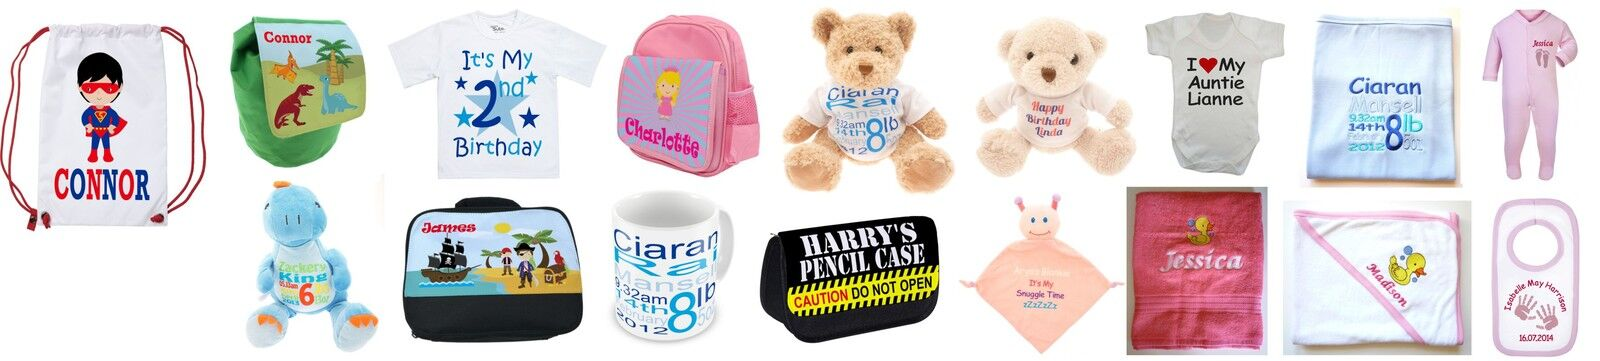 Ready Teddy Go Personalised Gifts